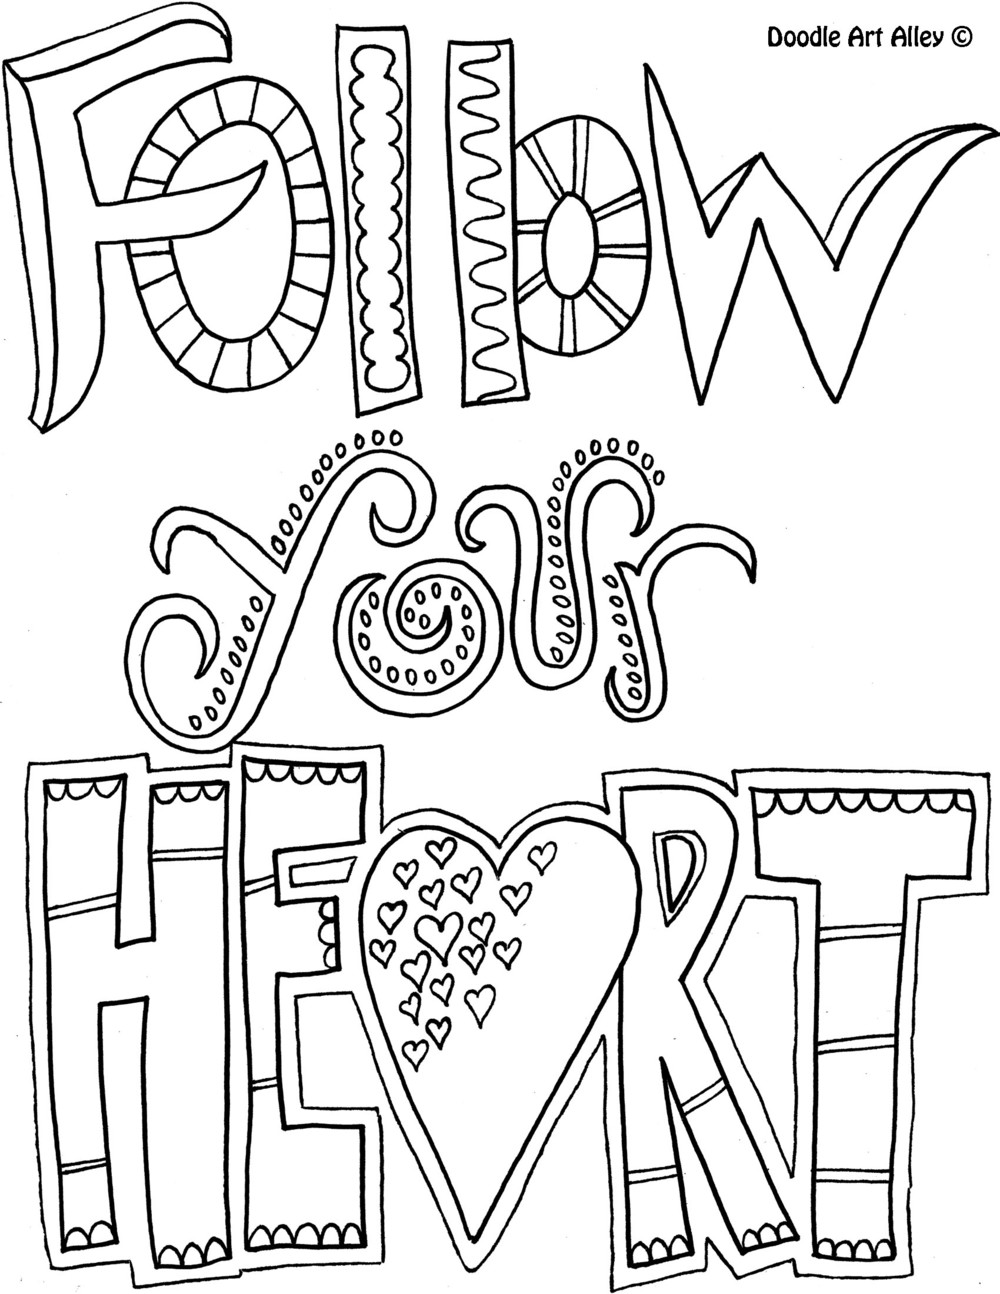 1000x1294 Bubble Letter Name Coloring Pages Humorous Bubble Letter Name